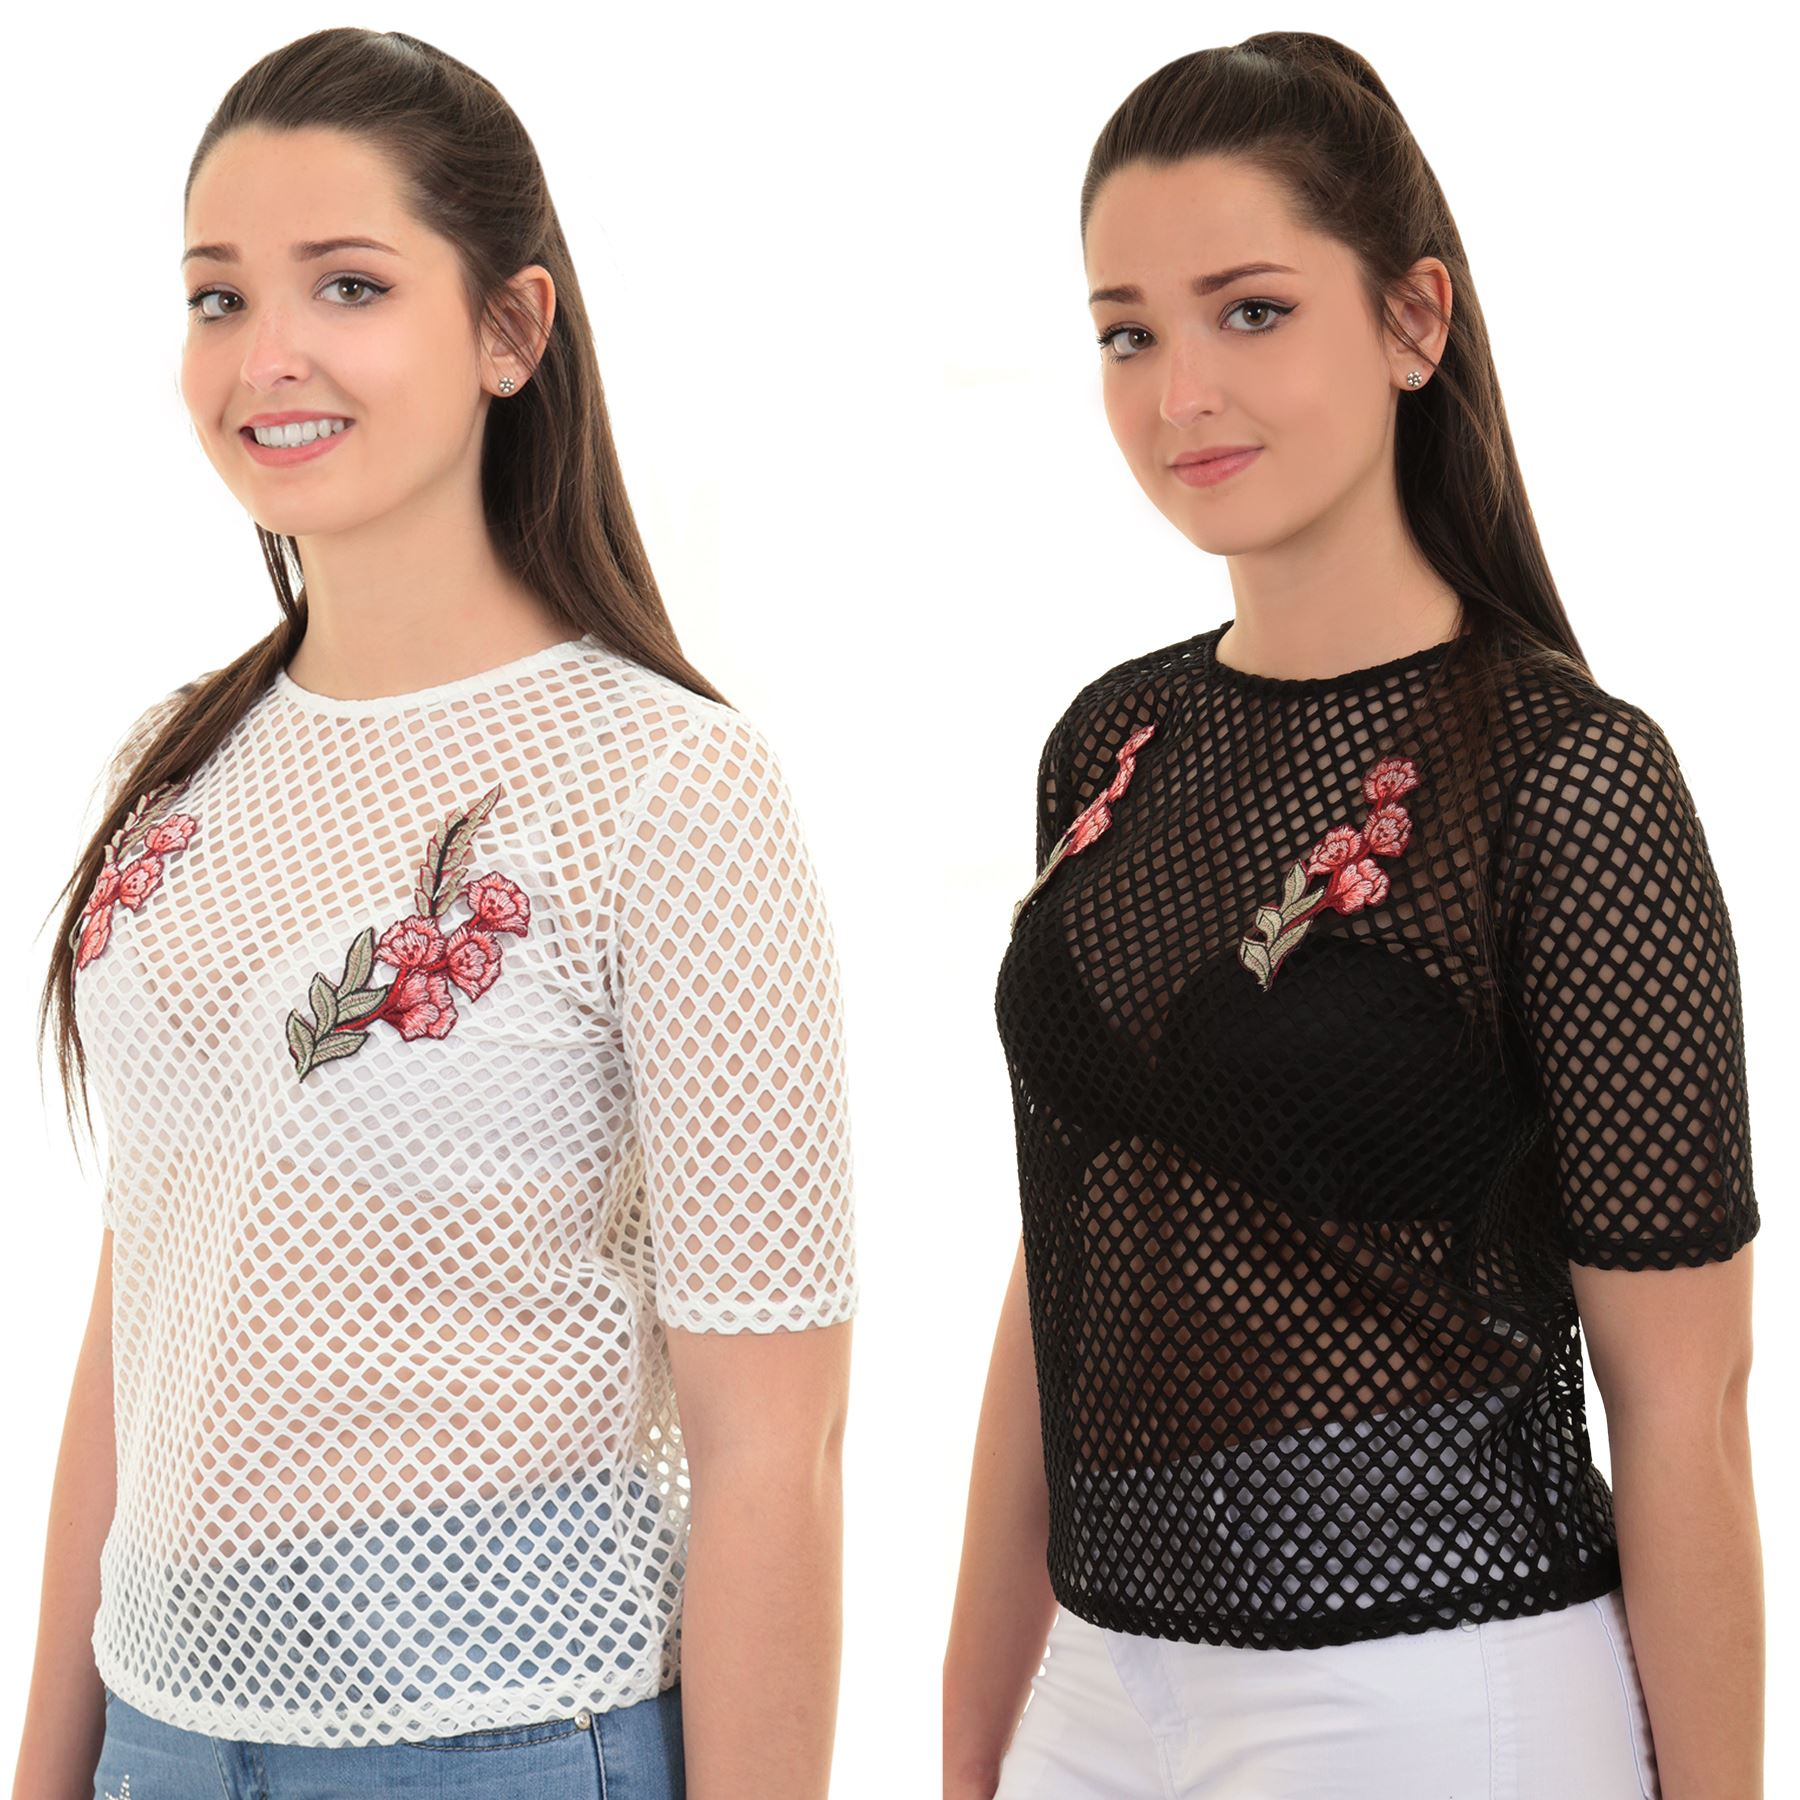 239b111c06f3f Details about Womens Semi Sheer Mesh Fish Net Short Sleeve Floral  Embroidered Top T-Shirt